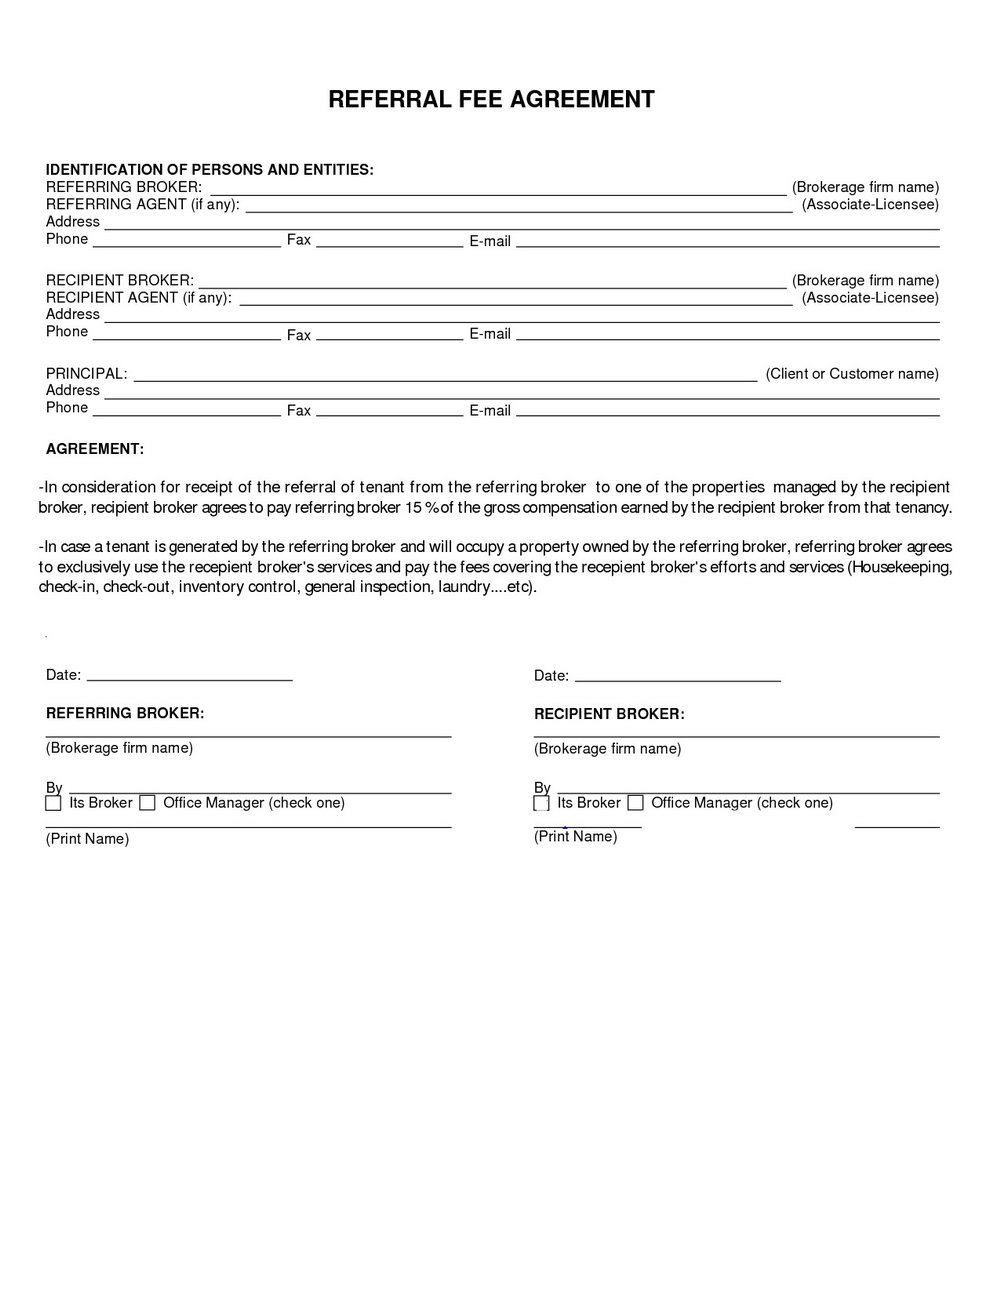 Referral Commission Agreement Template